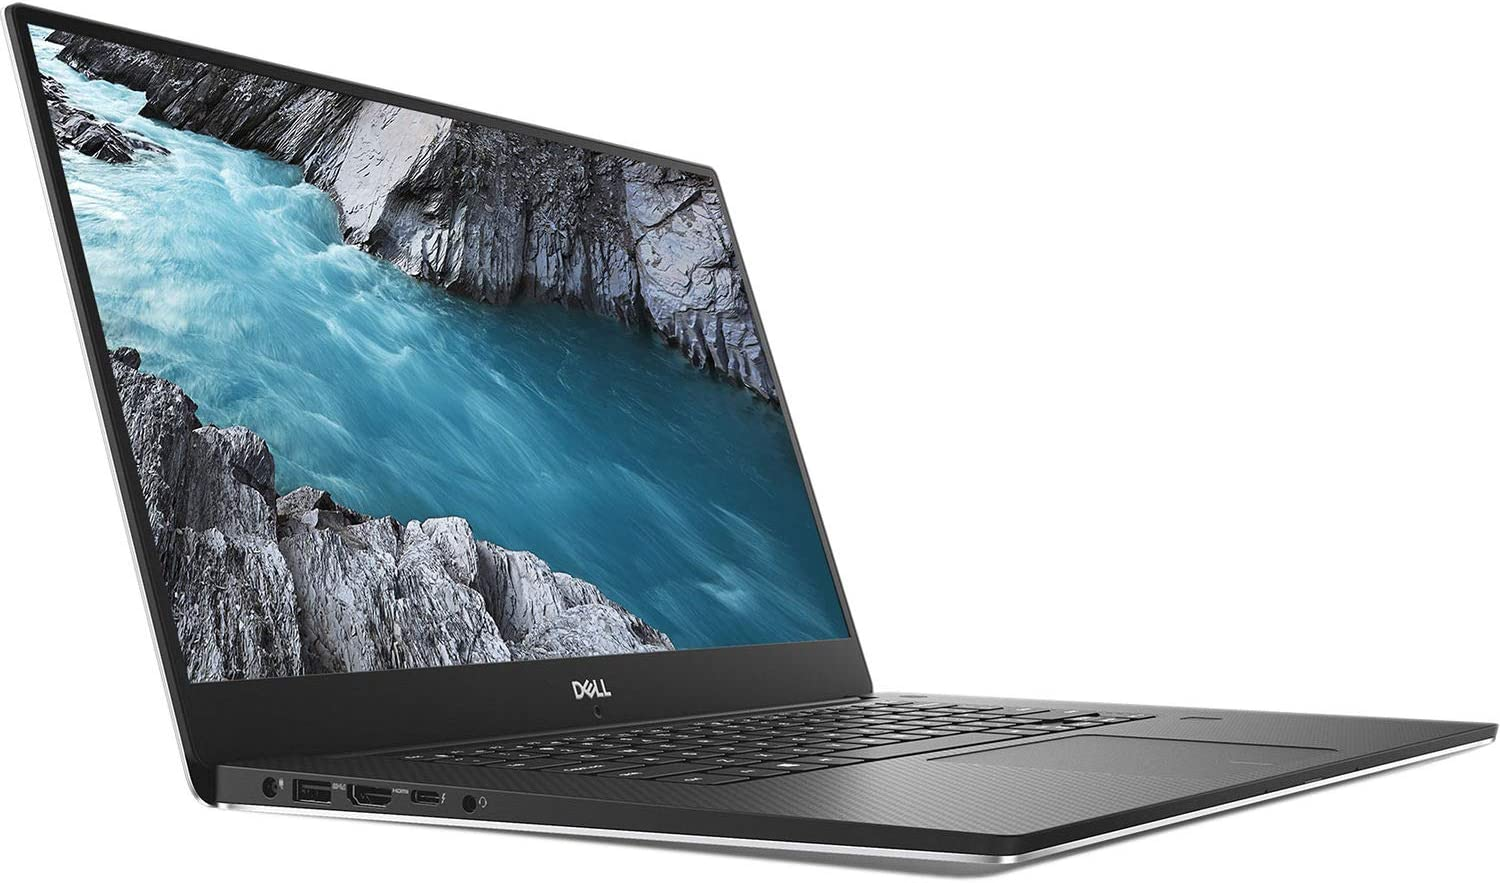 "Dell XPS 15 9570 15.6"" Touchscreen InfinityEdge 4K Ultra HD Laptop - 8th Gen Intel Core i7-8750H Processor up to 4.10 GHz, 32GB Memory, 1TB SSD, 4GB NVIDIA GeForce GTX 1050 Ti, Windows 10 Home, Silver"